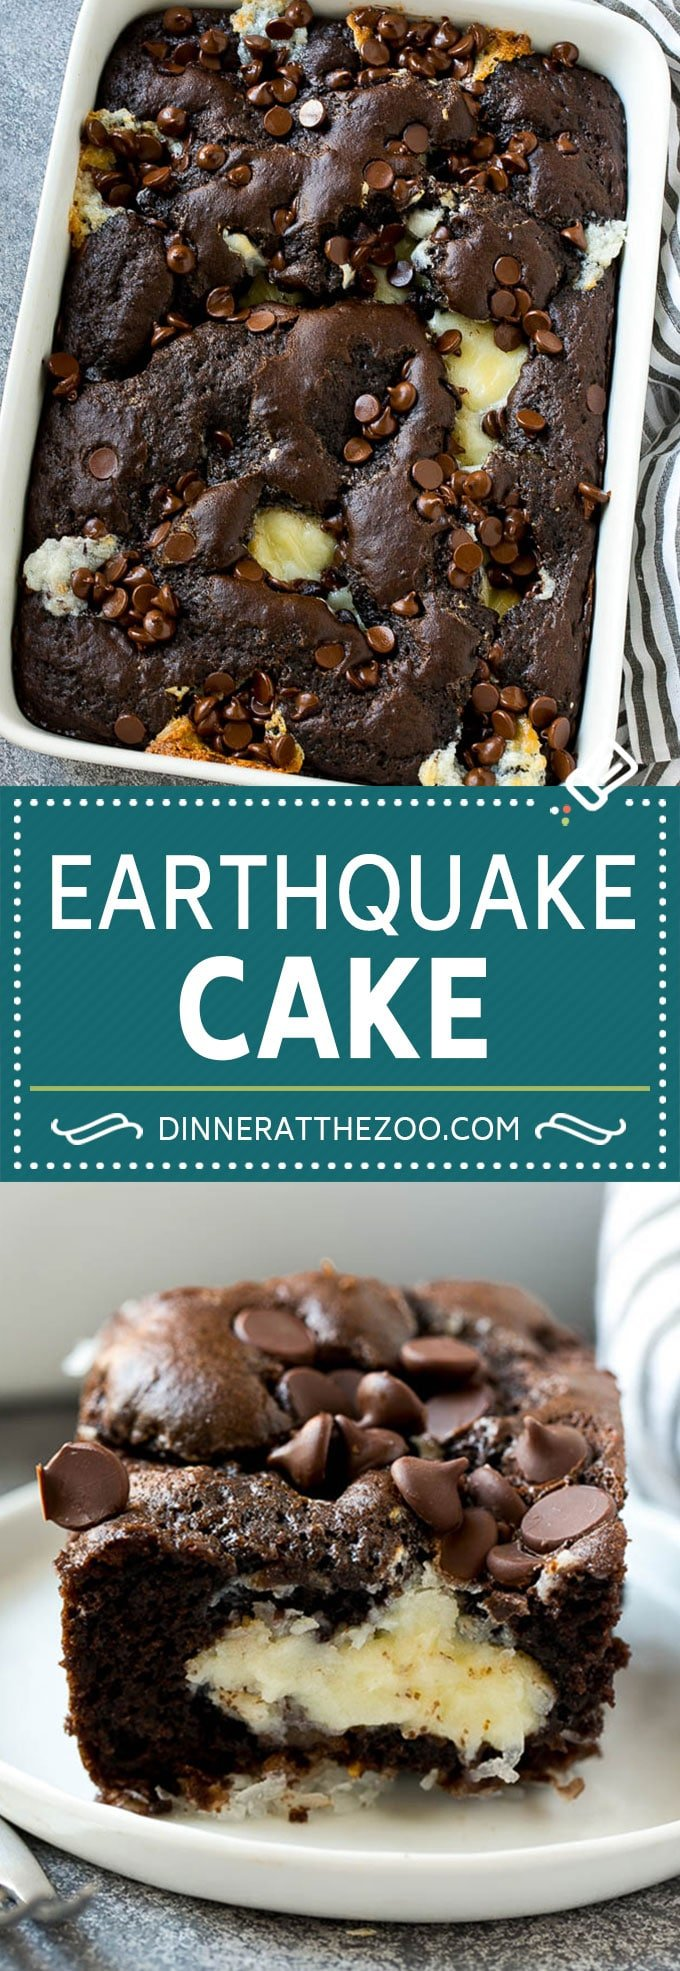 Earthquake Cake Recipe | Chocolate Cake Recipe | Chocolate Coconut Cake | Coconut Pecan Cake #cake #chocolate #coconut #pecans #dessert #chocolatecake #dinneratthezoo